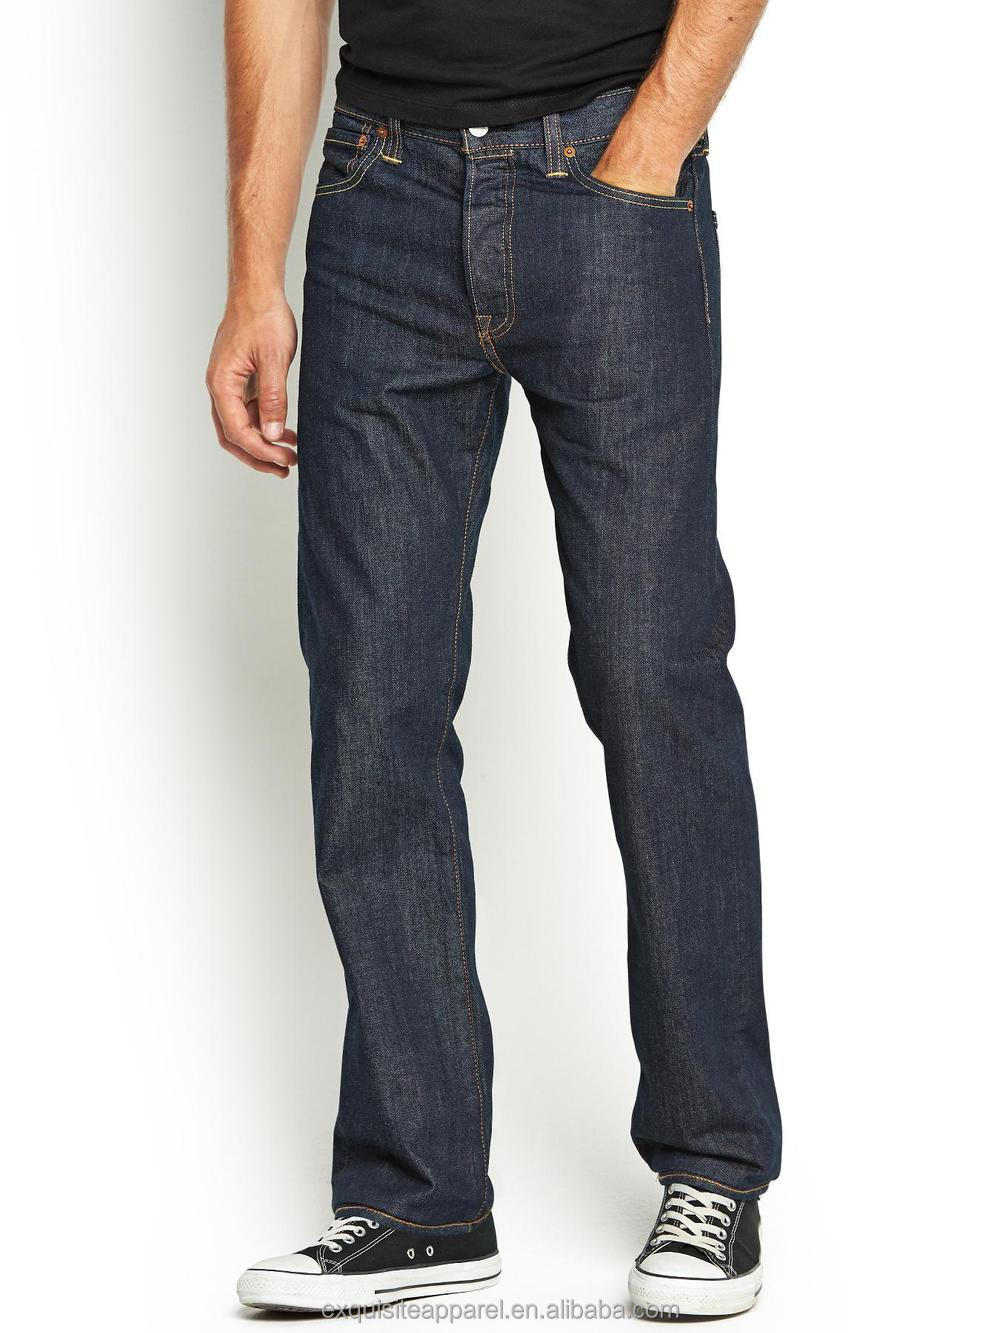 Mens Jeans. Available for Home Try-on. FILTER BY > men's jeans. Mens. Shop all our men's jeans. Straight; GET THESE. Straight - Crosby. $ Medium/Dark Blue best fit for you. Keep the one you like and send the second pair back for free. With the free pre .